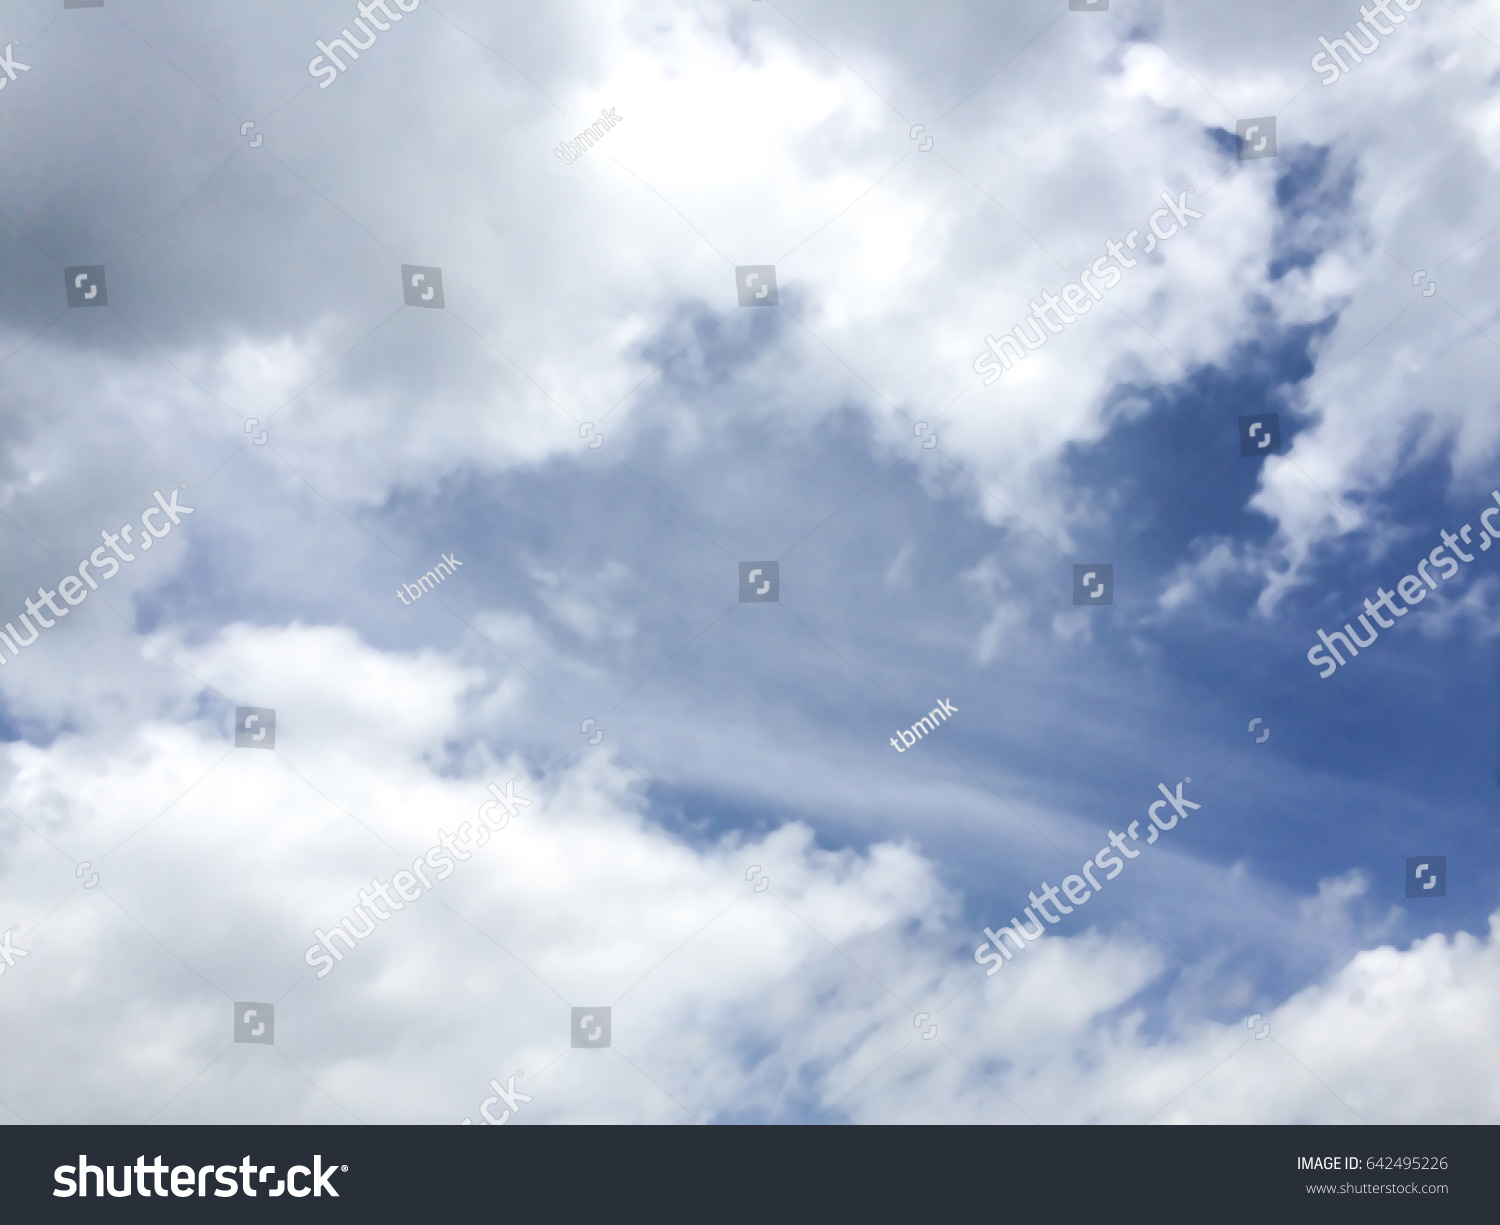 clear blue sky white clouds wallpaper stock photo (edit now